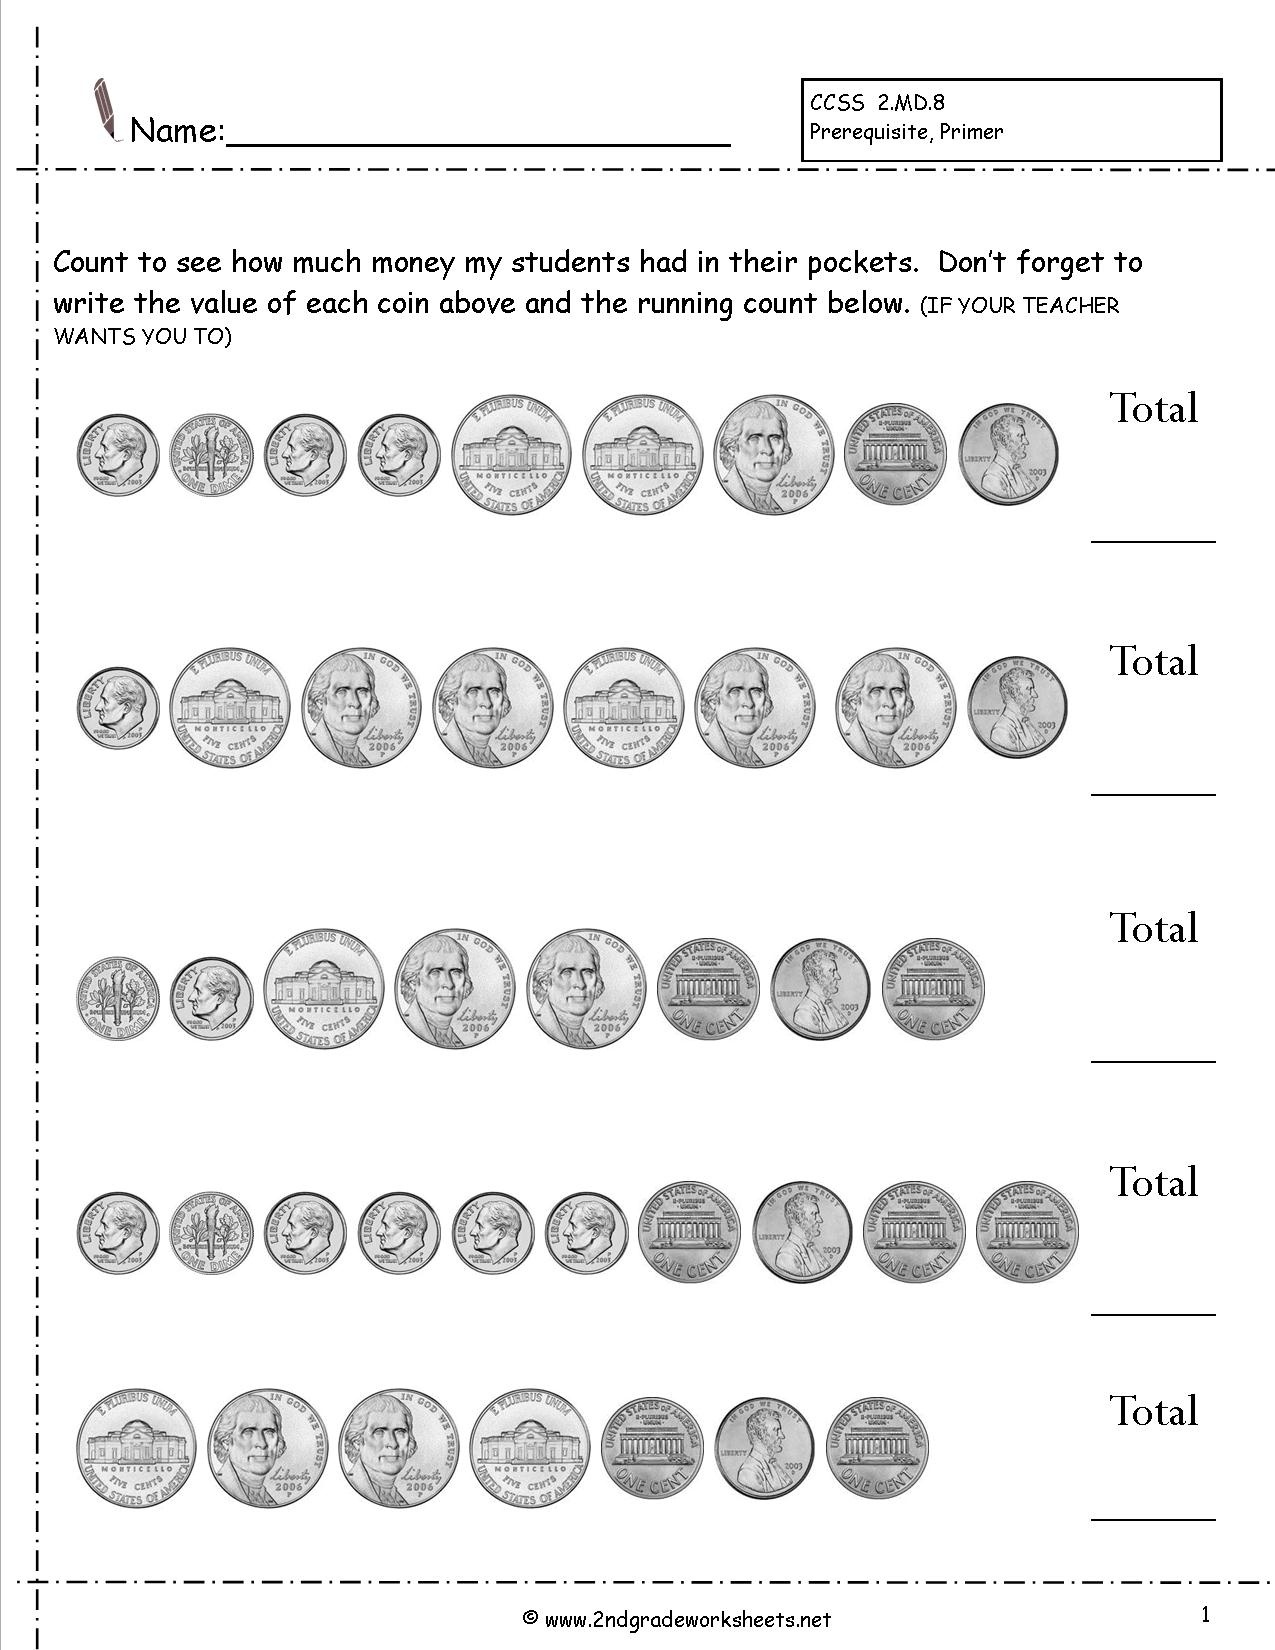 Counting Coins And Money Worksheets And Printouts - Free Printable Counting Money Worksheets For 2Nd Grade